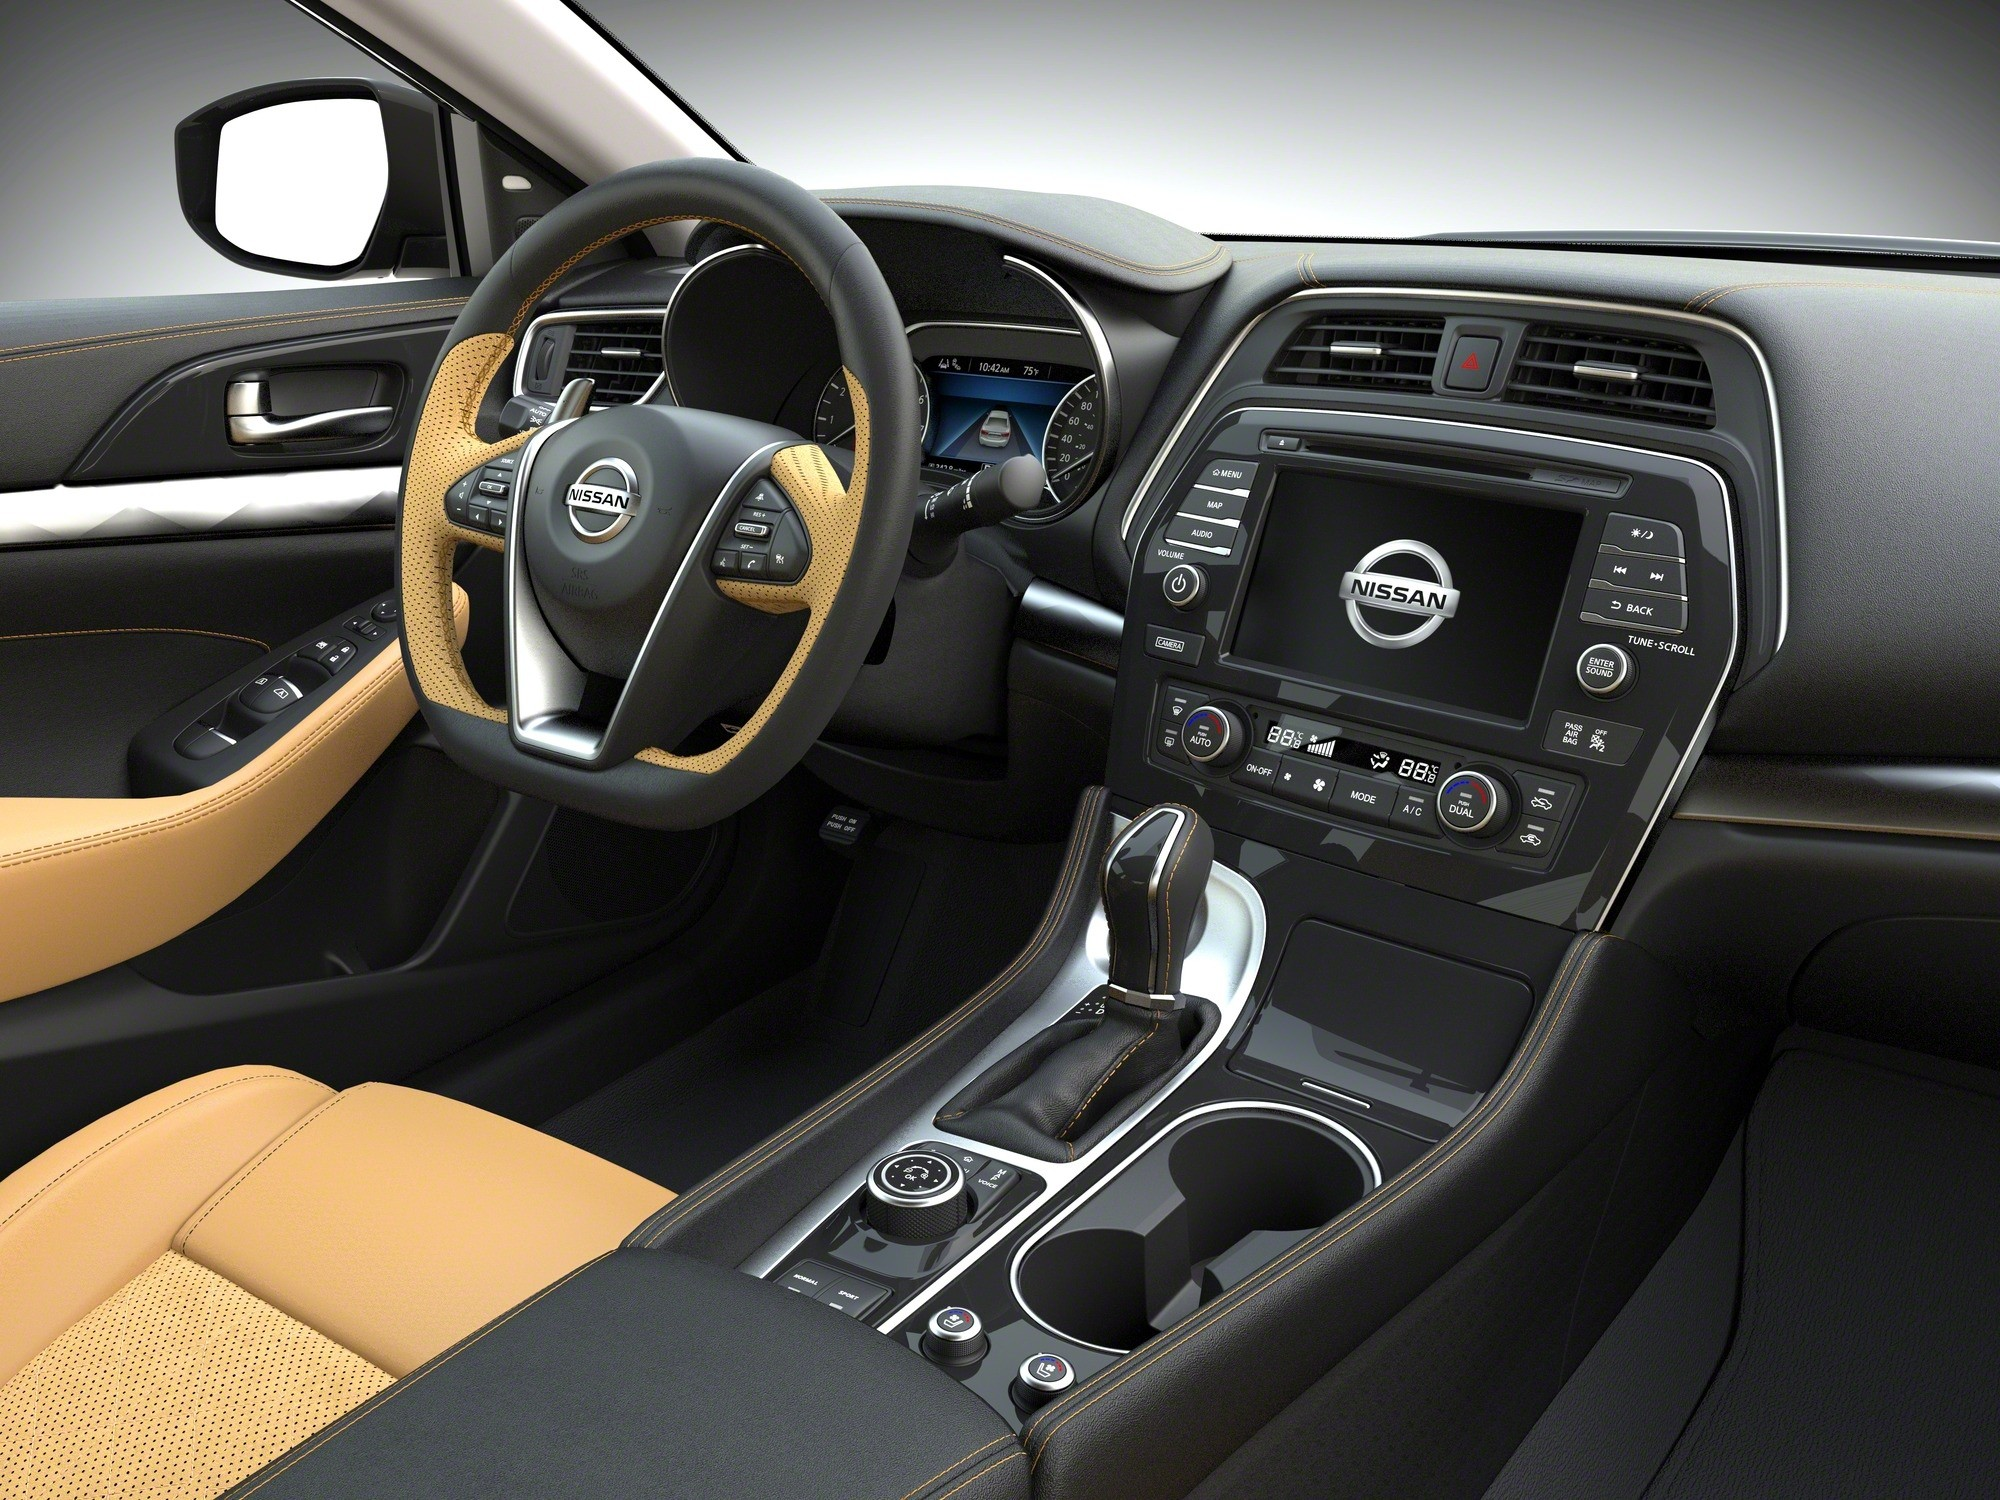 review and price design maxima nissan release date cars